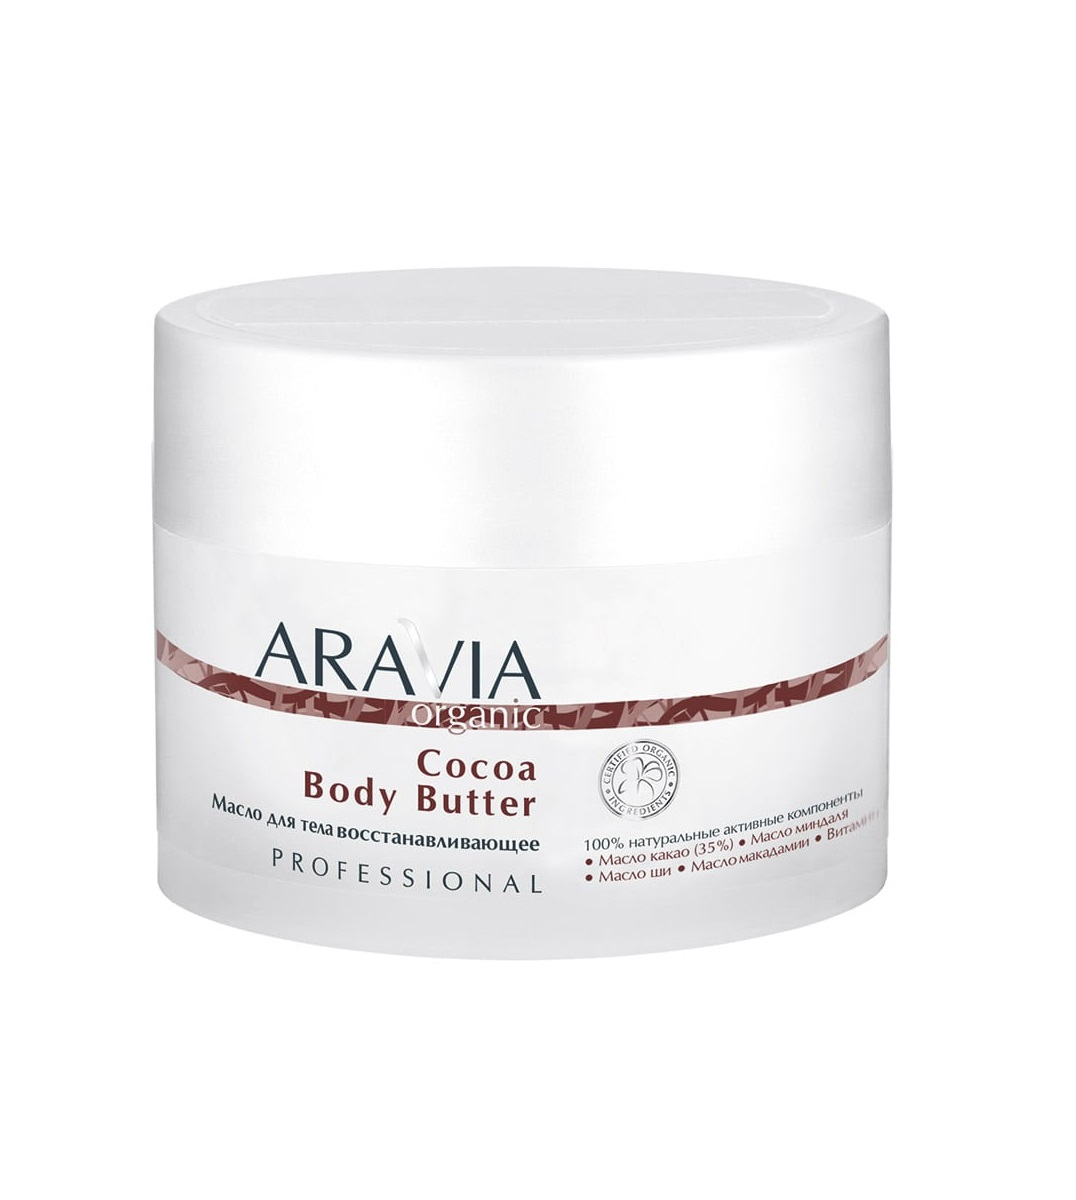 Масло для тела восстанавливающее Aravia Cocoa Body Butter